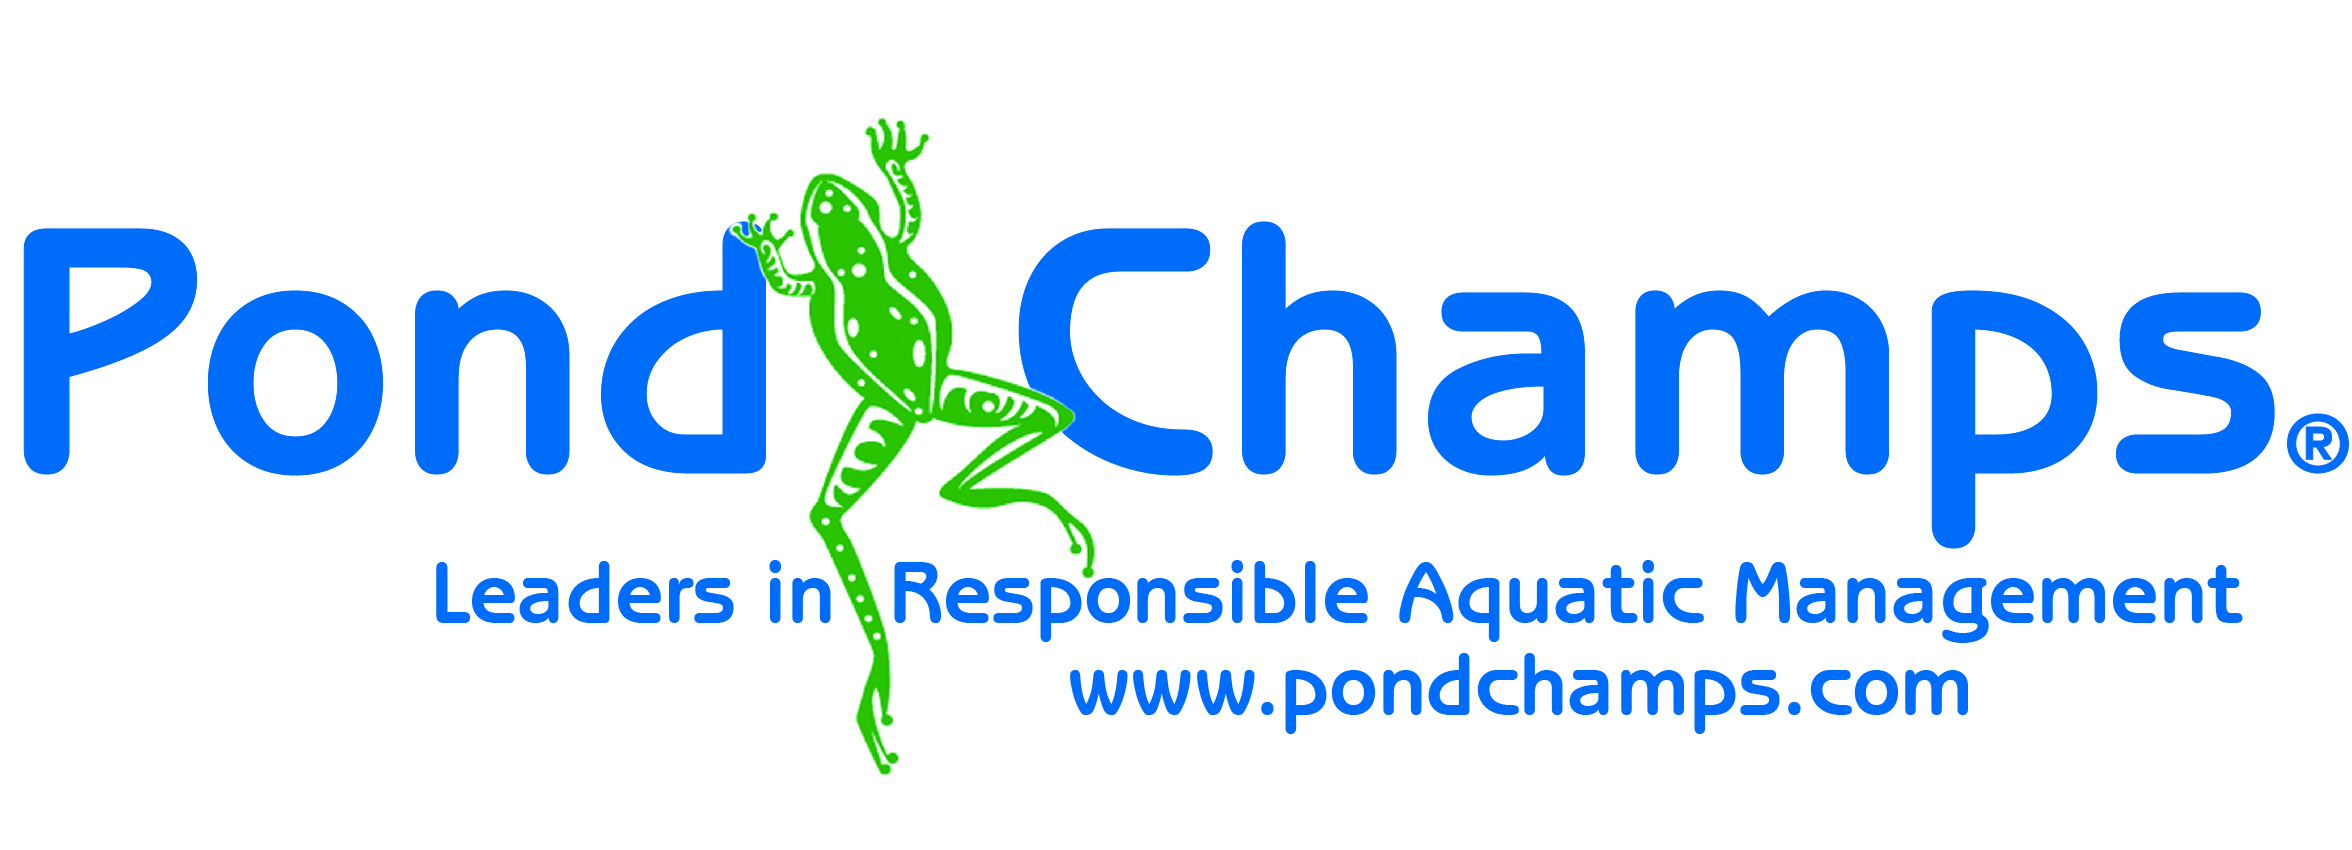 Pond Champs Logo 2013 with slogan and website